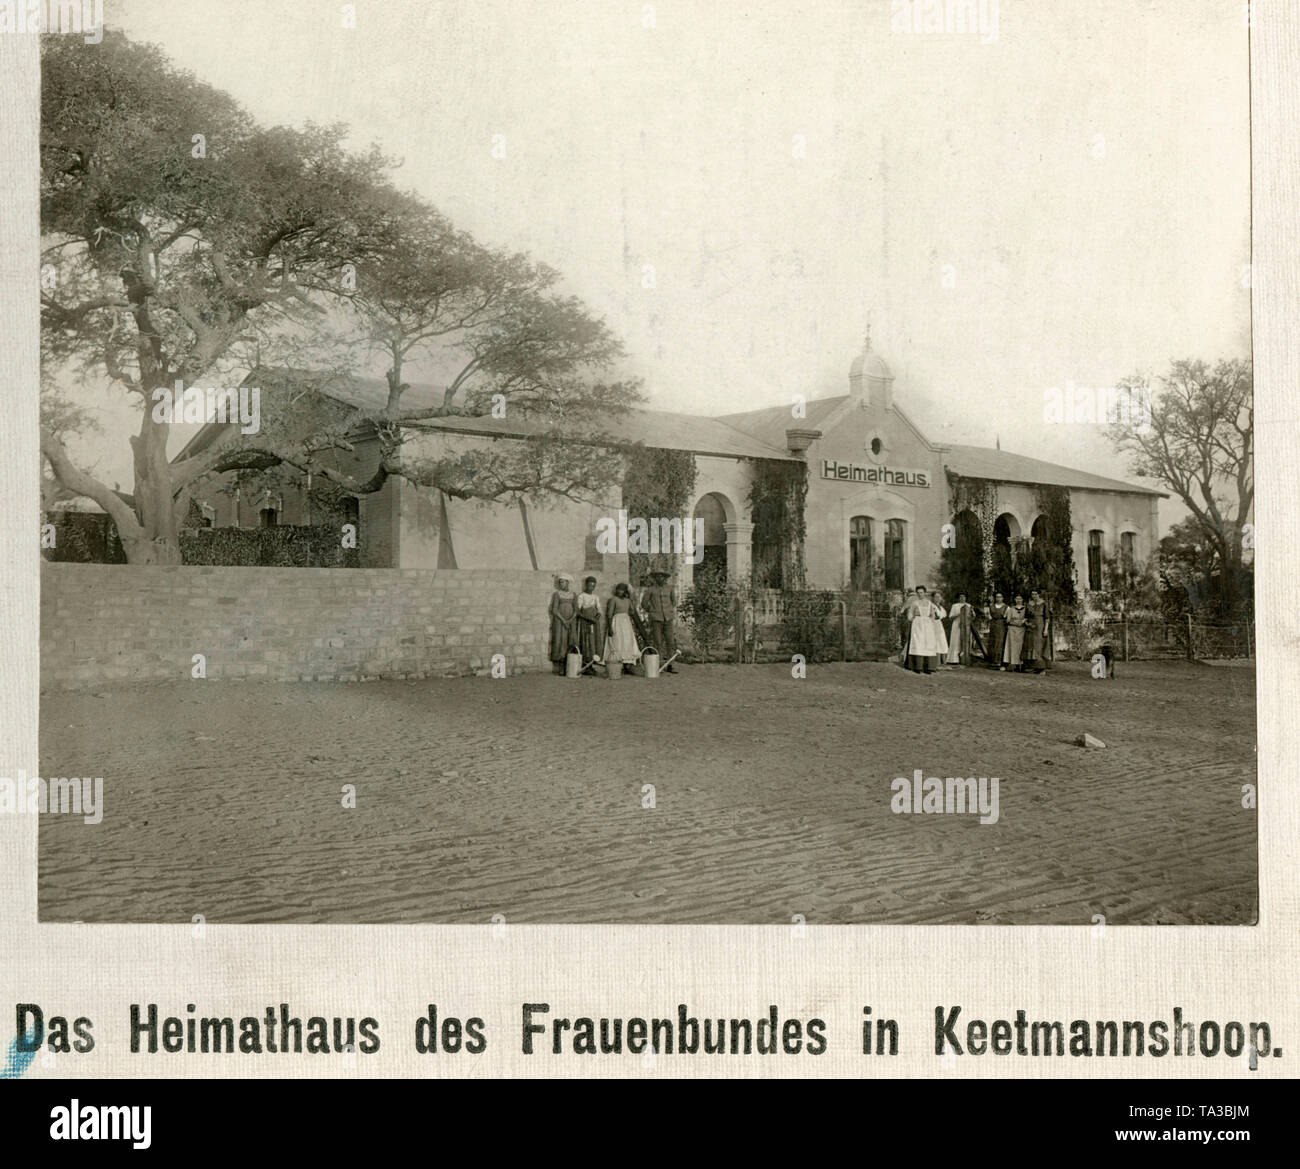 Front view of the house of the Women's Association in Keetmannshoop, German South West Africa. - Stock Image